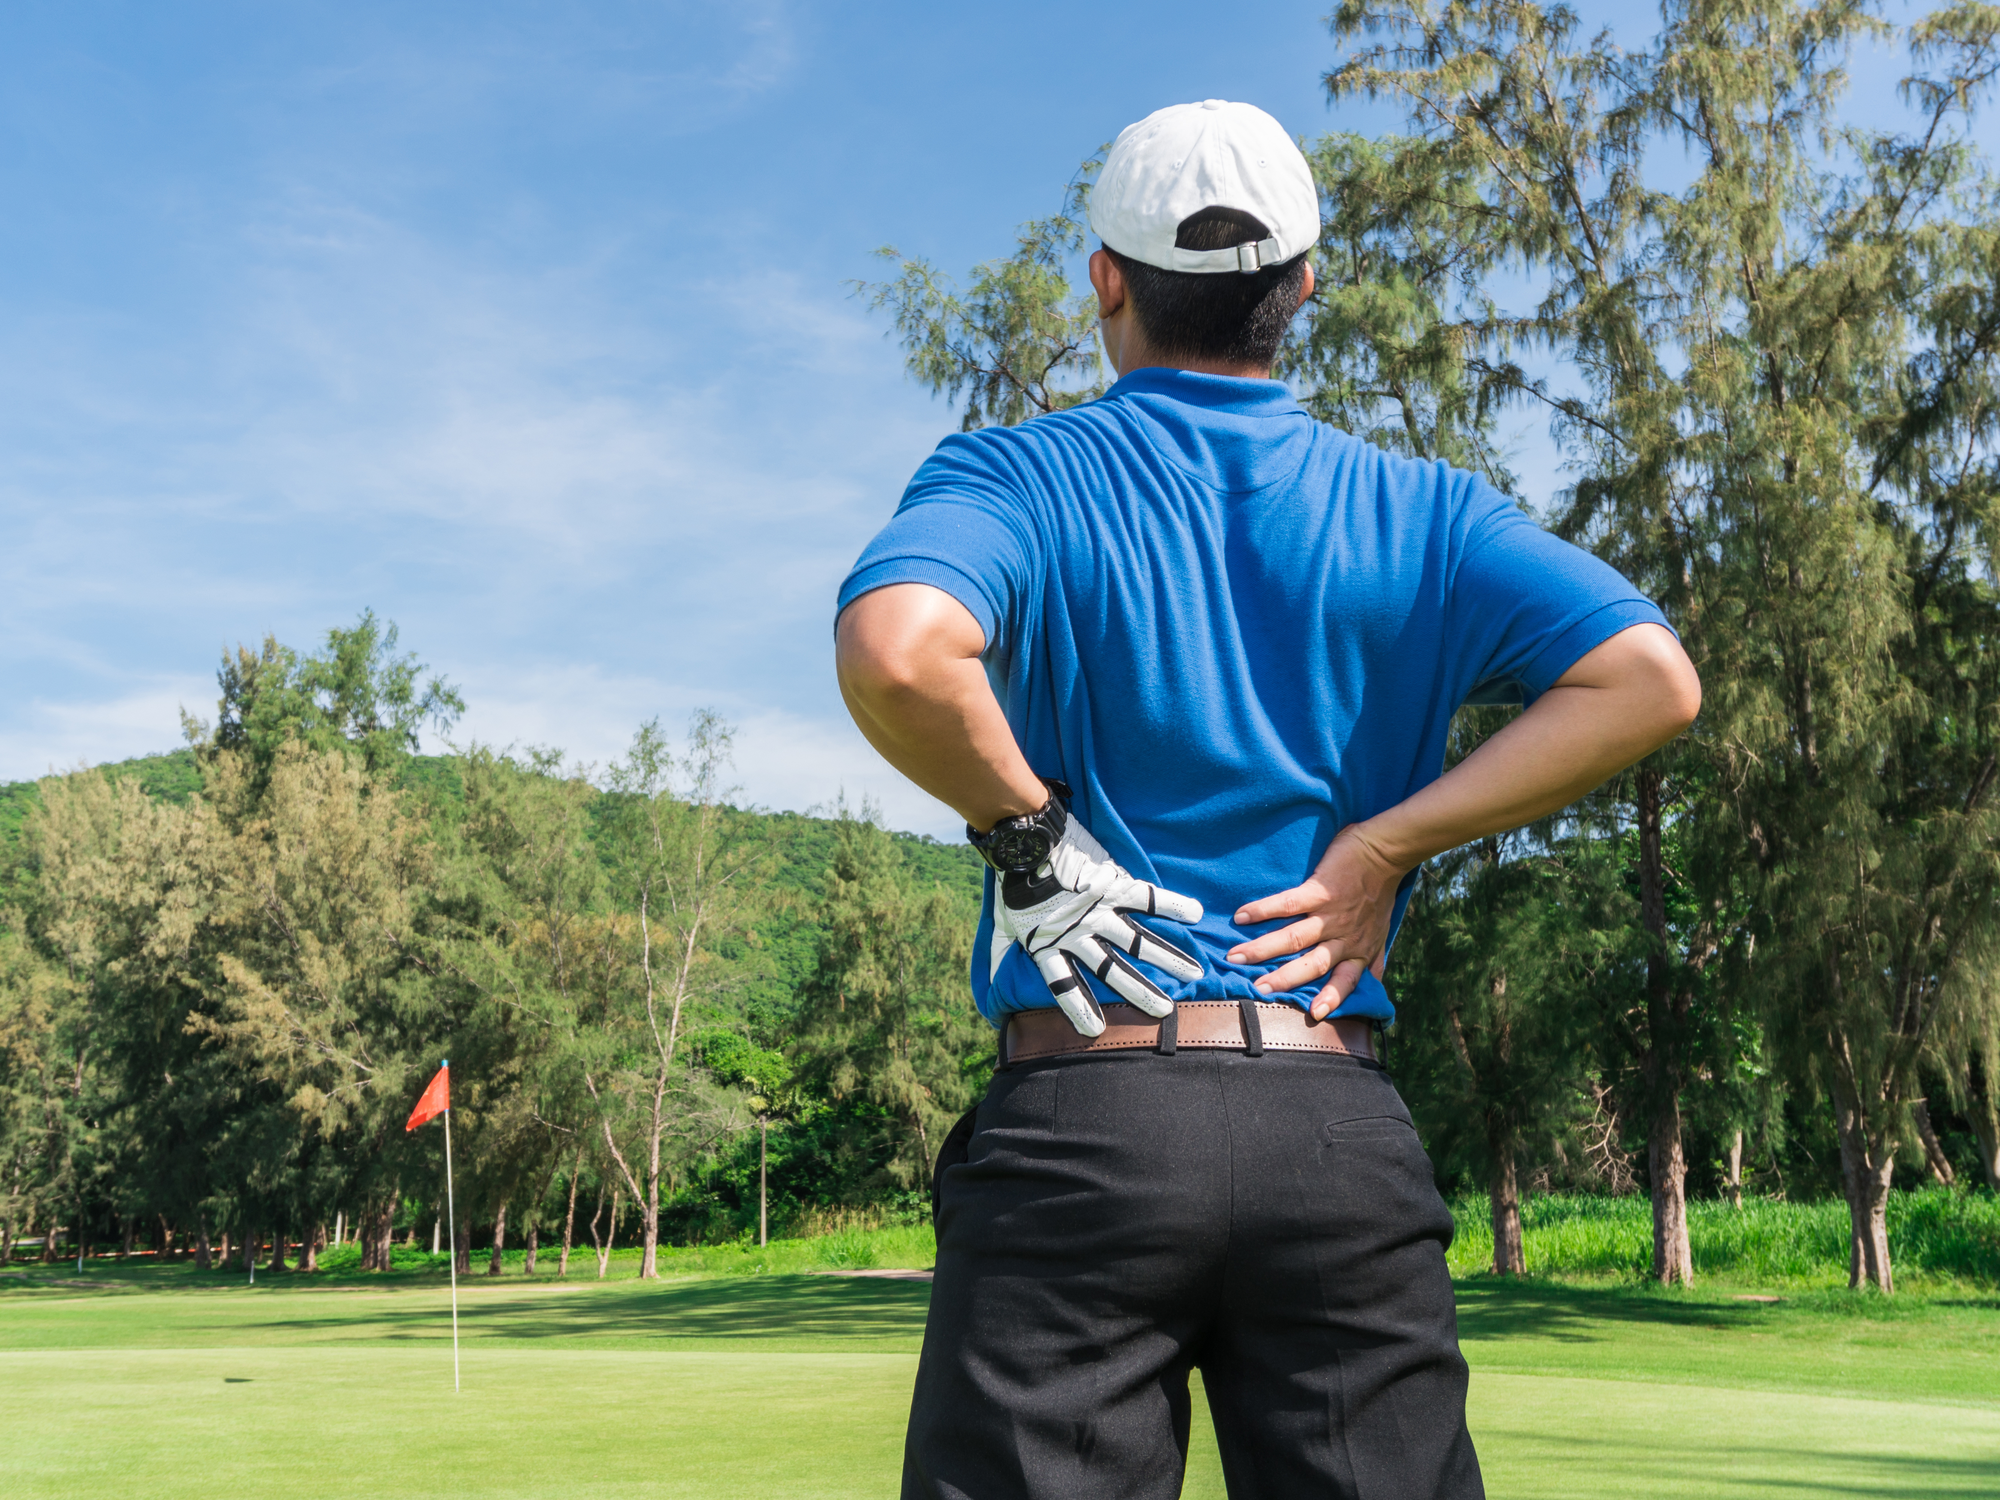 Dealing With Golf Injuries: How Chiropractic Care Can Help